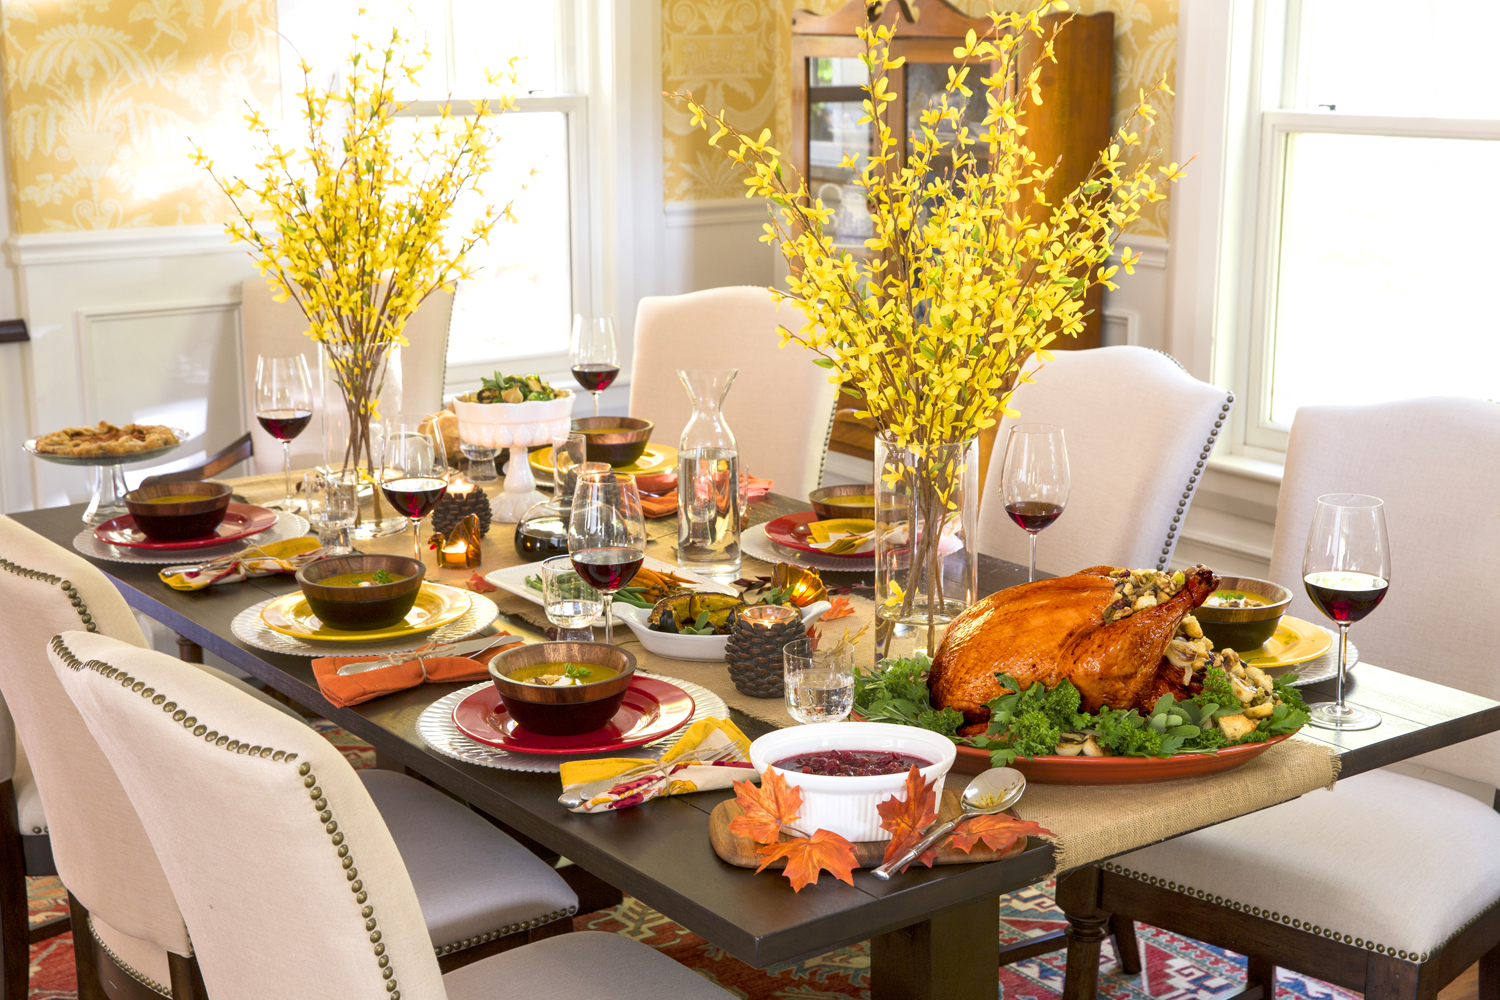 10 tips for decorating and setting your thanksgiving table Decorating thanksgiving table